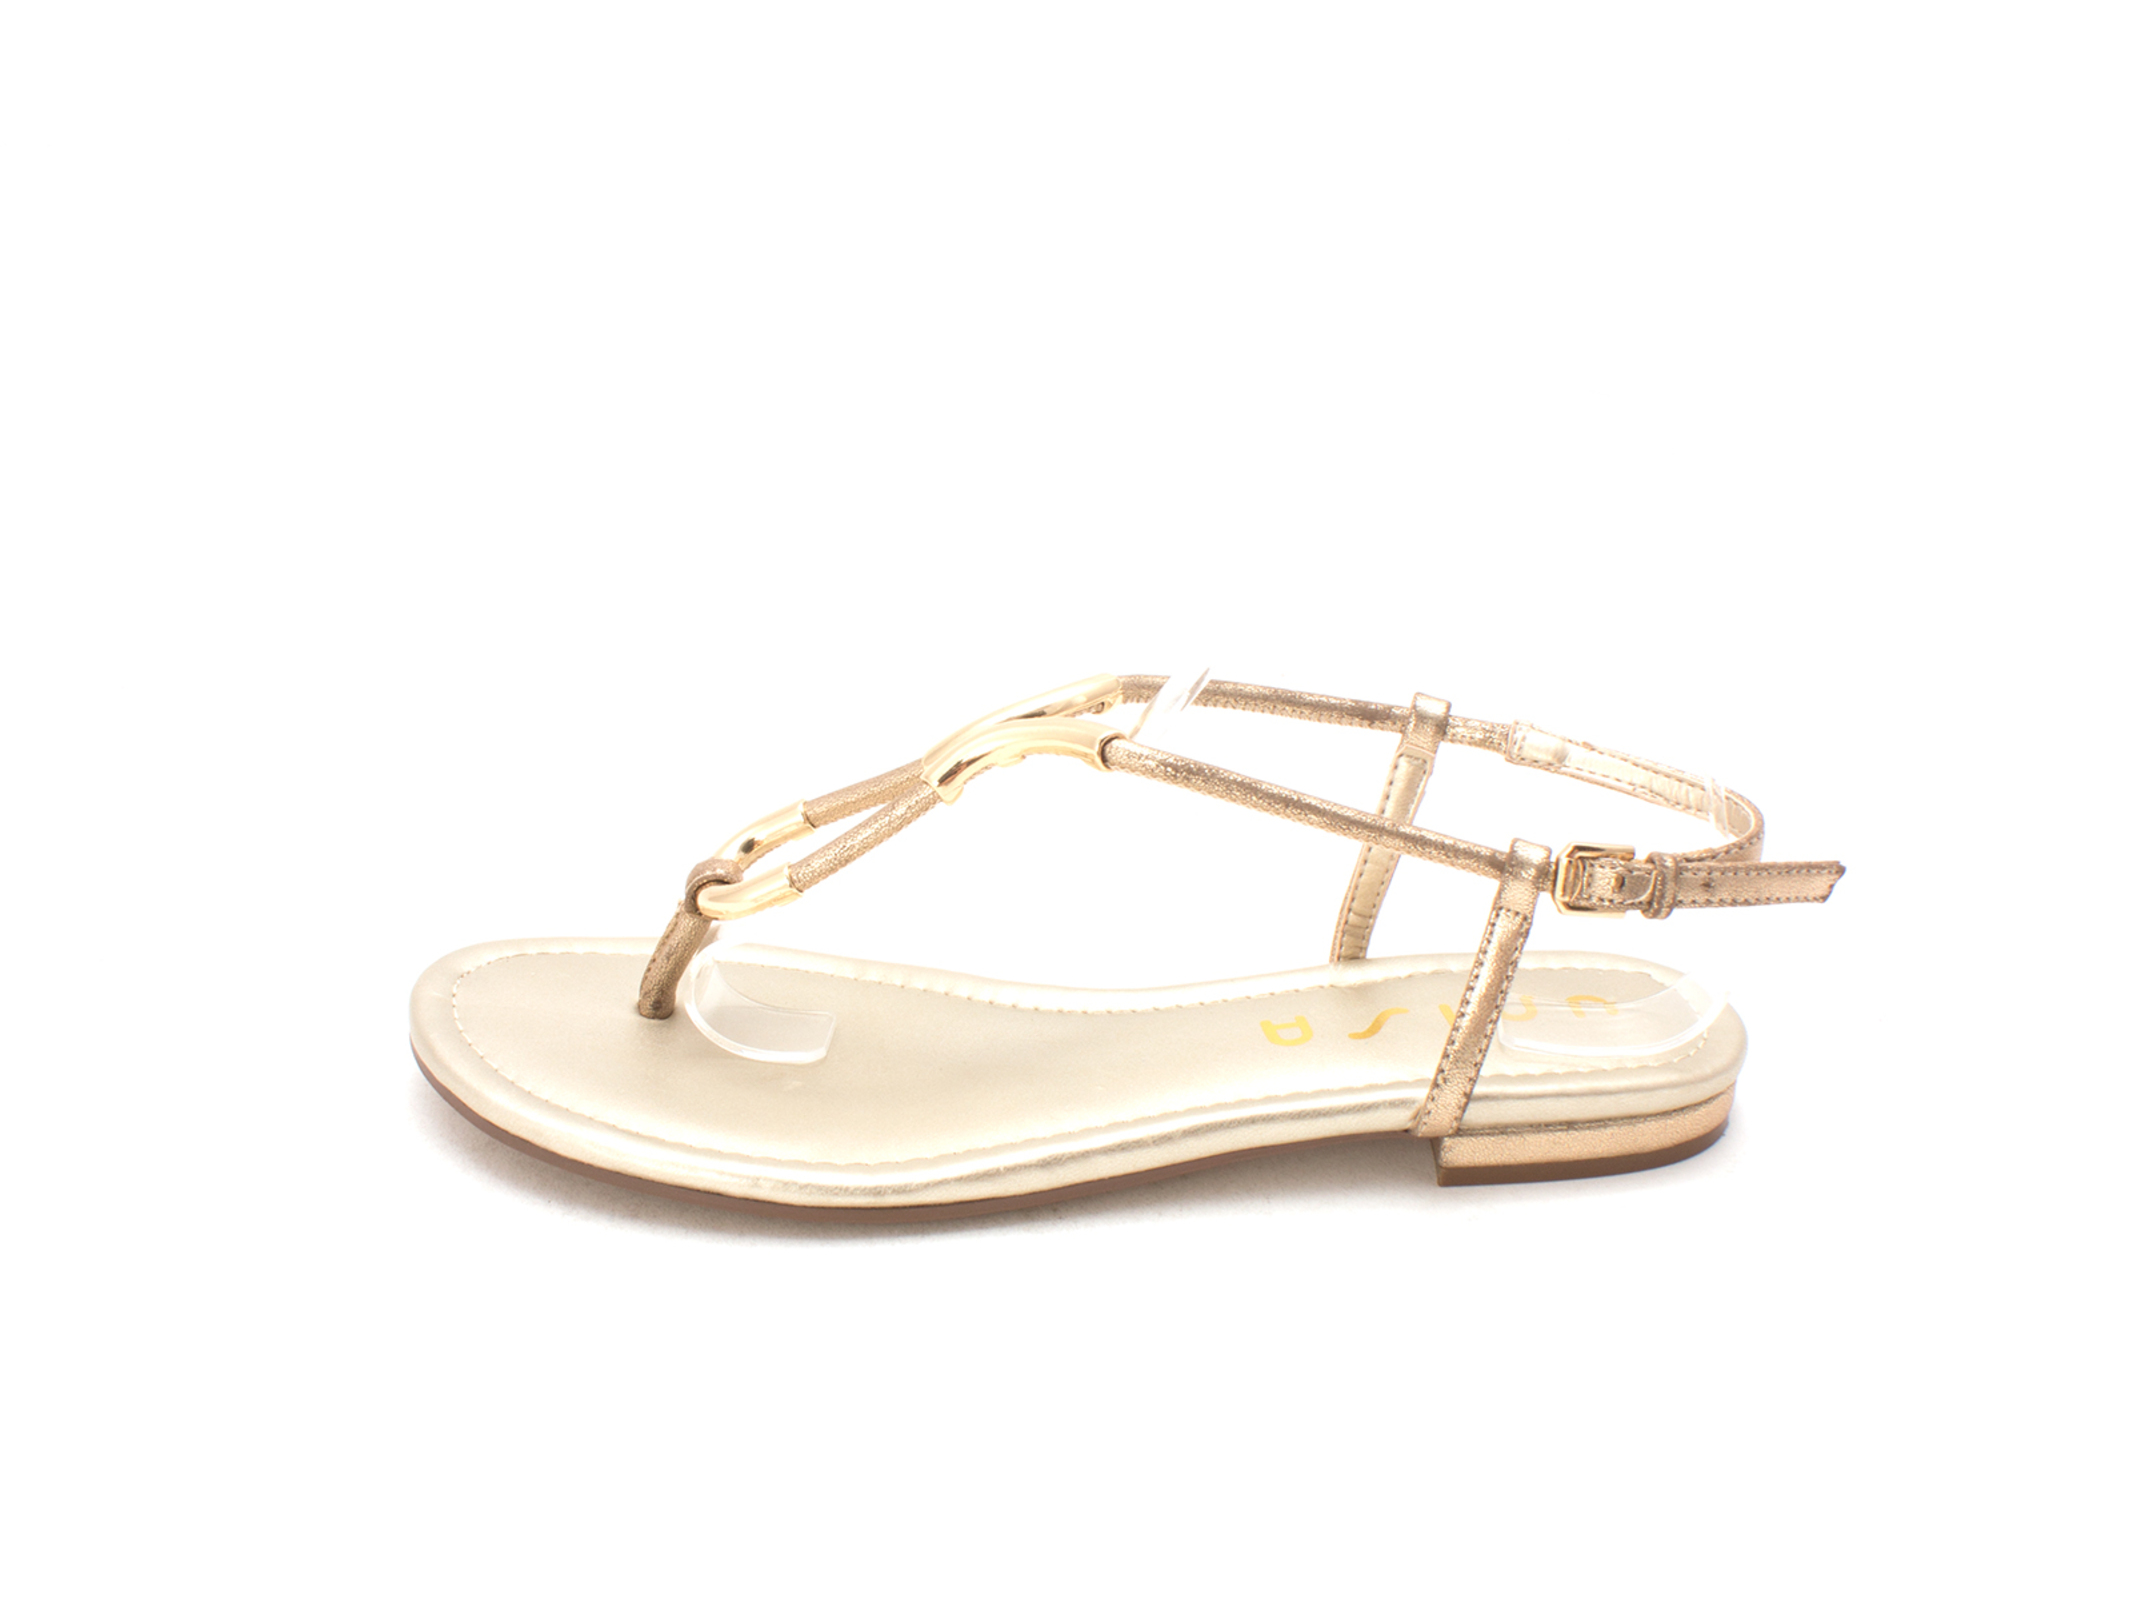 Unisa Womens DELSON Open Toe Casual Ankle Strap Sandals, Gold, Size 8.0